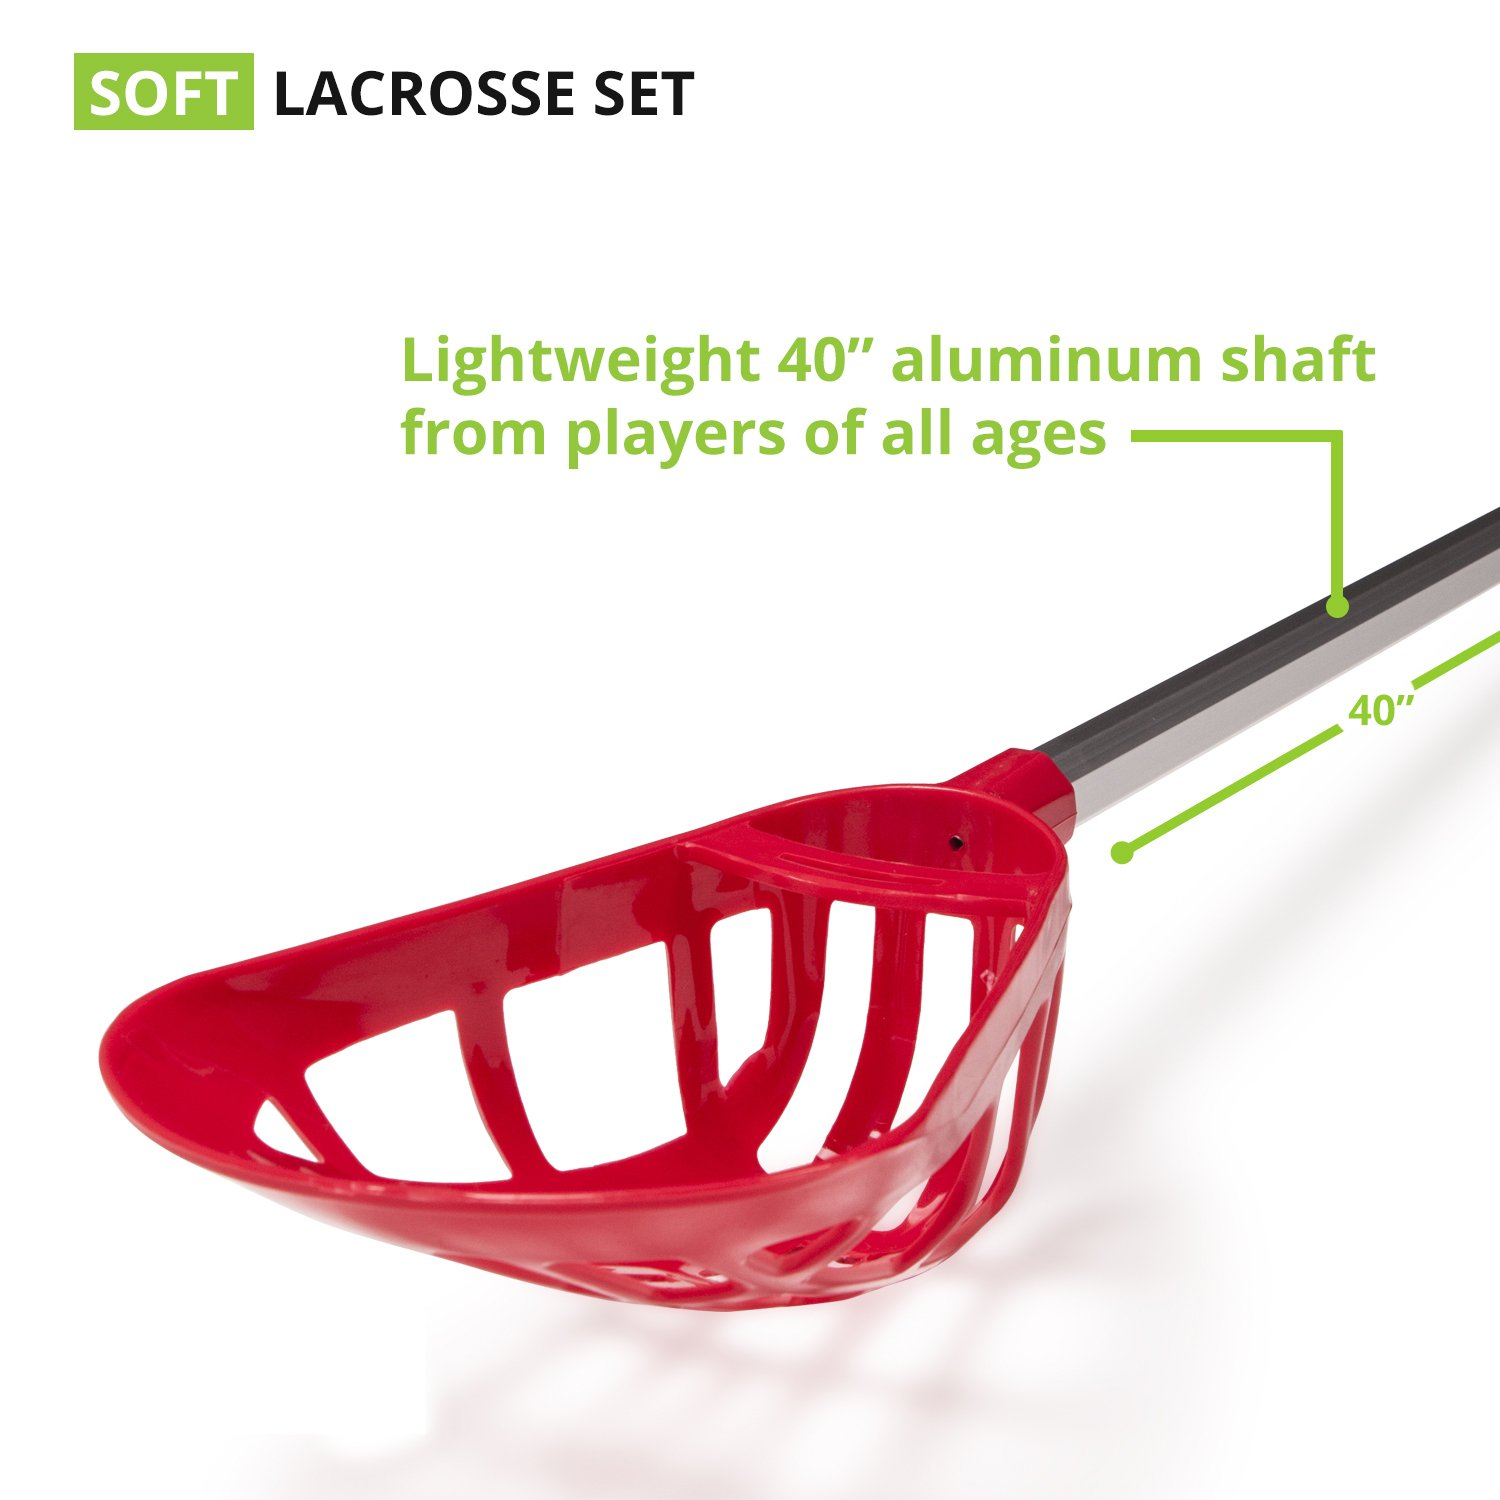 Champion Sports Soft Lacrosse Set: Training Equipment for Boys, Girls, Kids, Youth and Amateur Athletes - 12 Aluminum Sticks and 6 Vinyl Balls for Indoor Outdoor Use by Champion Sports (Image #4)